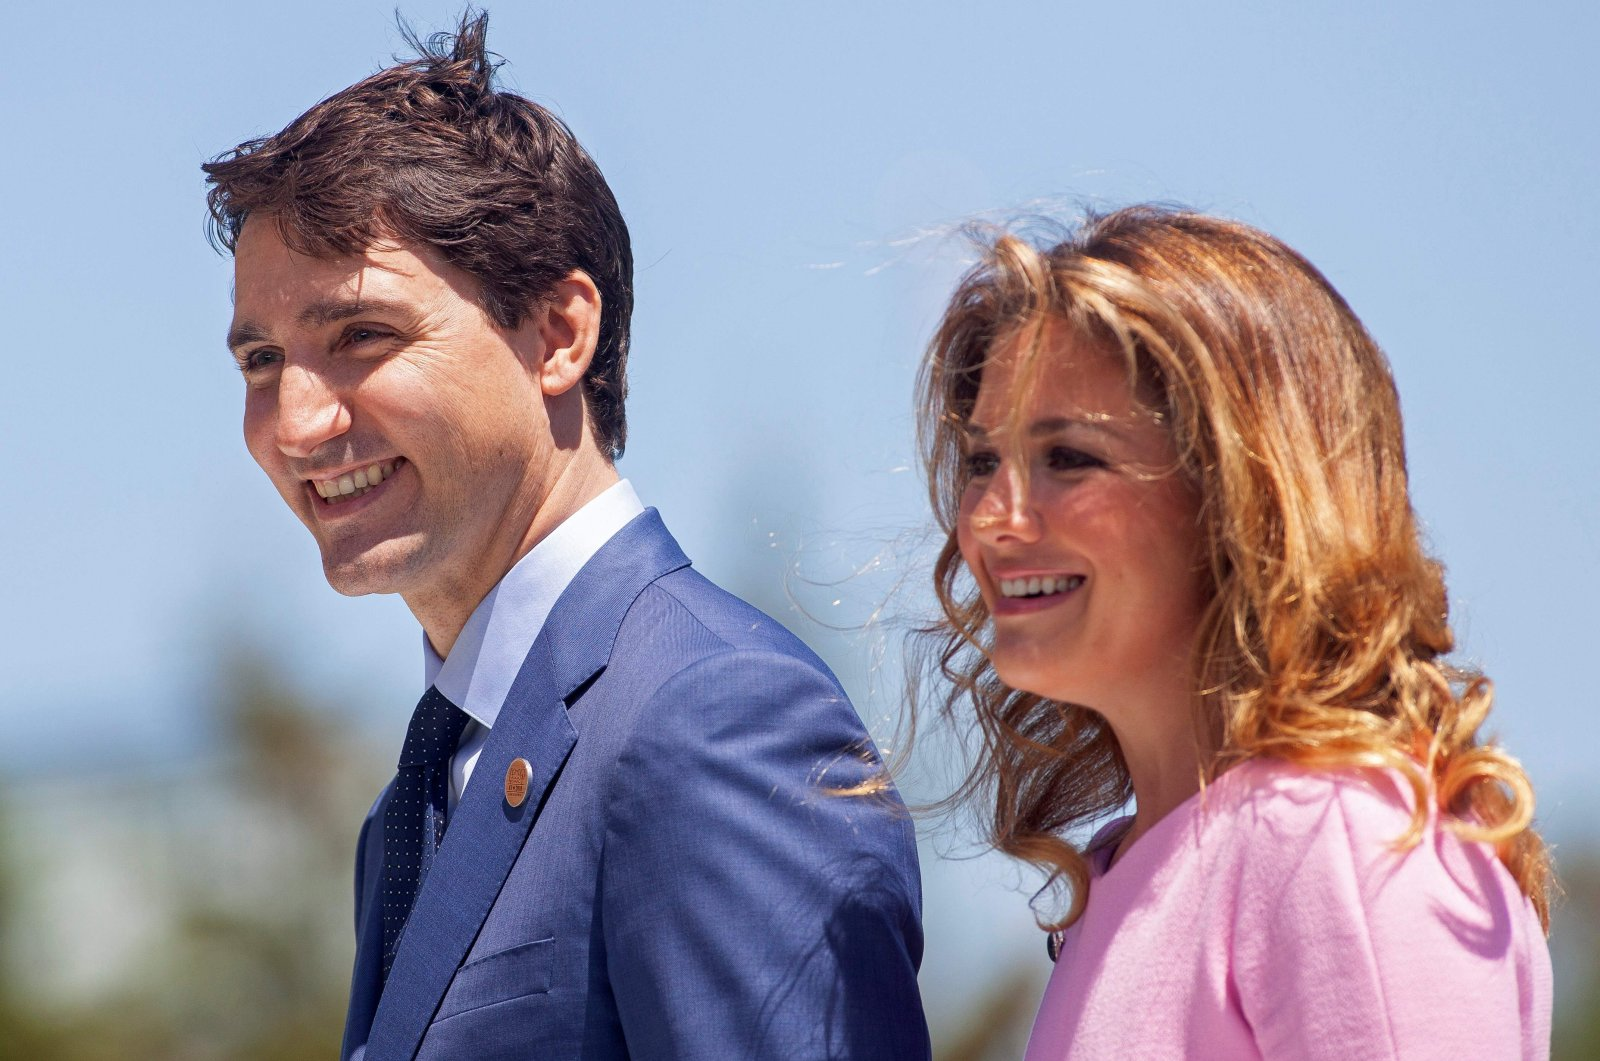 Prime Minister of Canada Justin Trudeau and his wife Sophie Gregoire Trudeau arrive for a welcome ceremony for G-7 leaders on the first day of the summit, La Malbaie, Quebec, June 8, 2018. (AFP Photo)